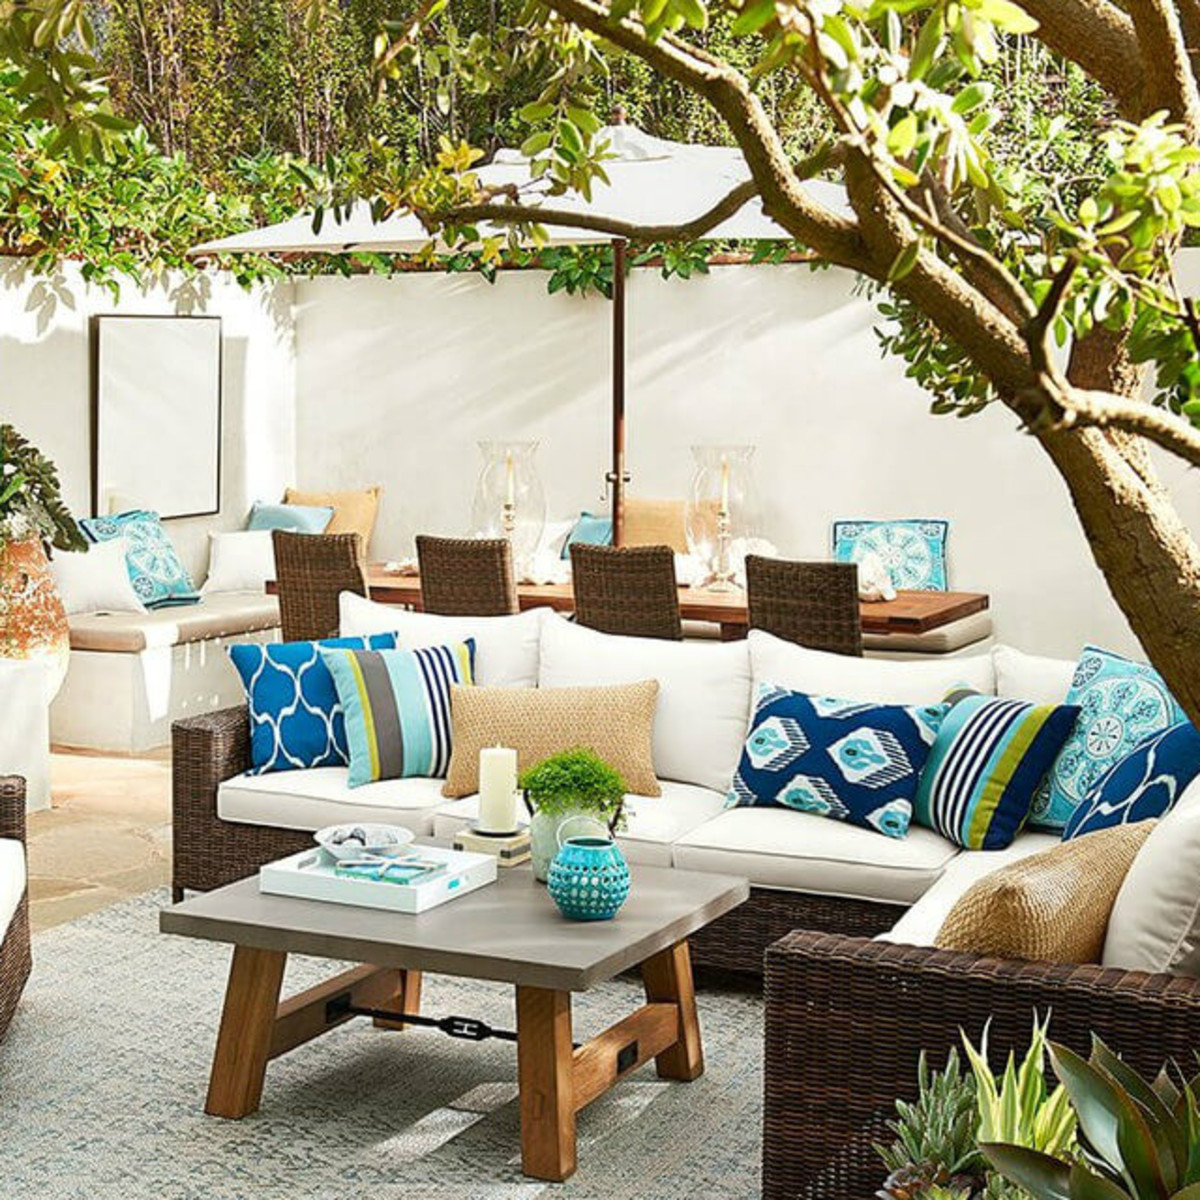 Have The Coolest Patio On The Block With These Hot Summer